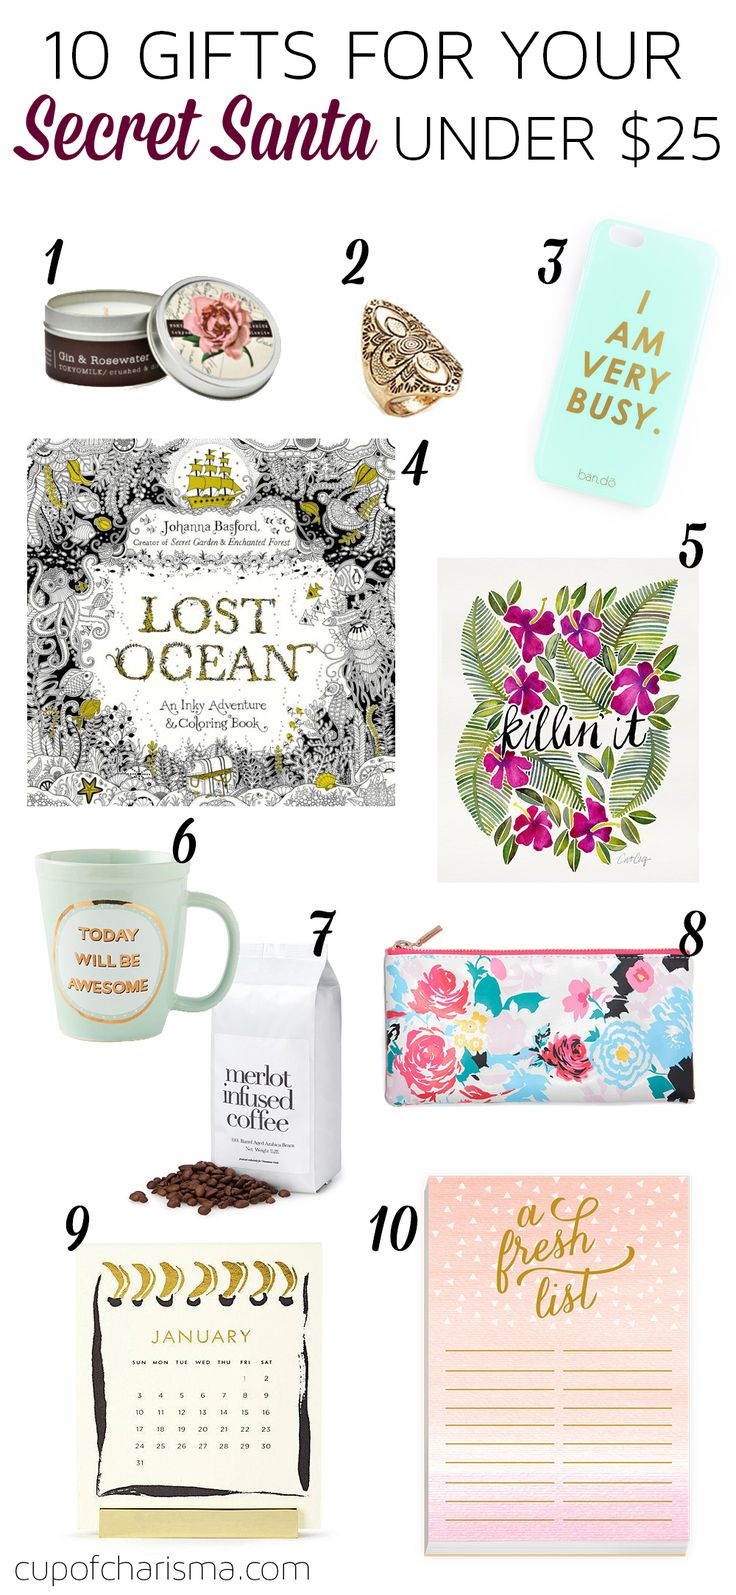 17 Best images about Presents on Pinterest